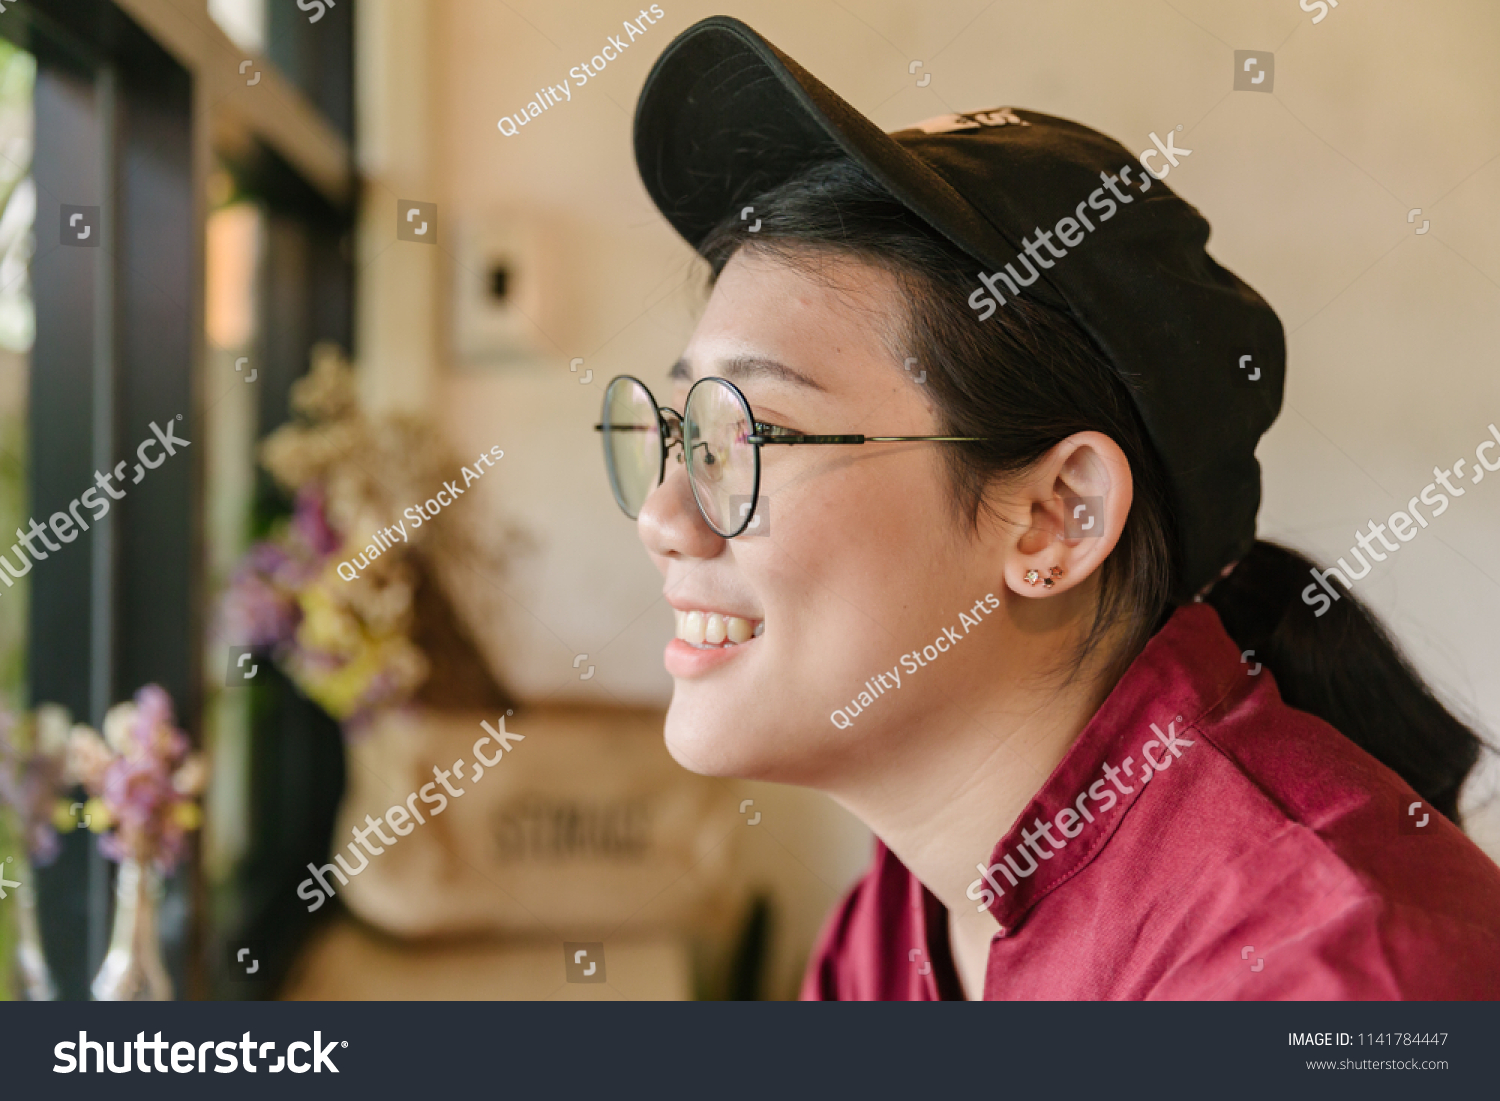 a27f764538d0 Cute Asian fat teen smile with glasses smiling and looking out of windows